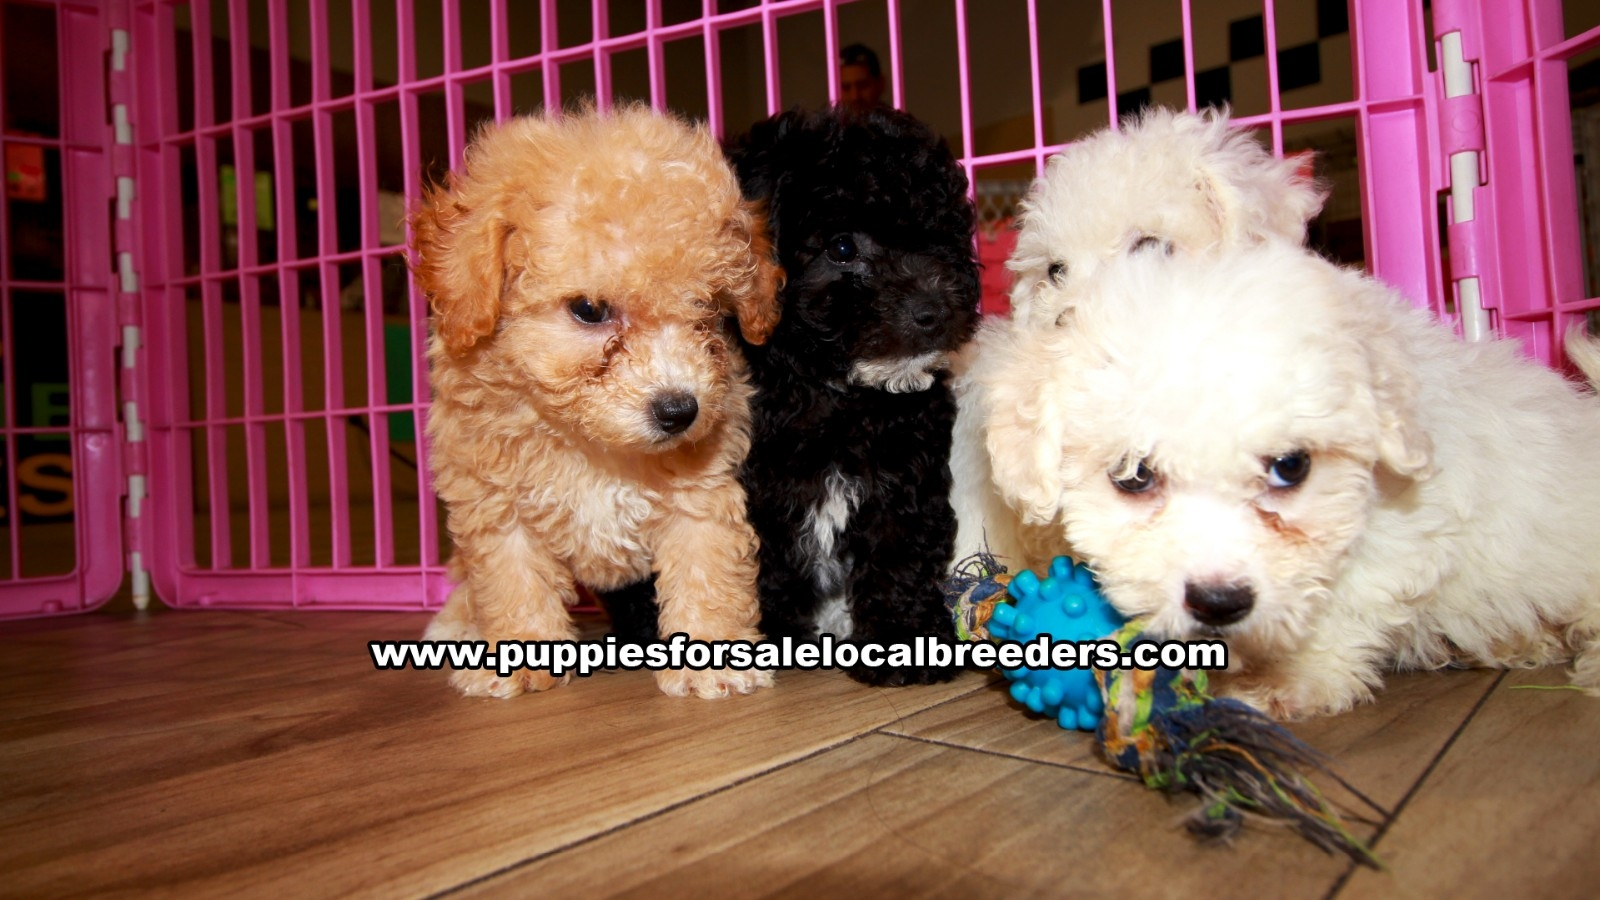 Bichon Poo, Puppies For Sale In Georgia, Local Breeders, Near Atlanta, Ga